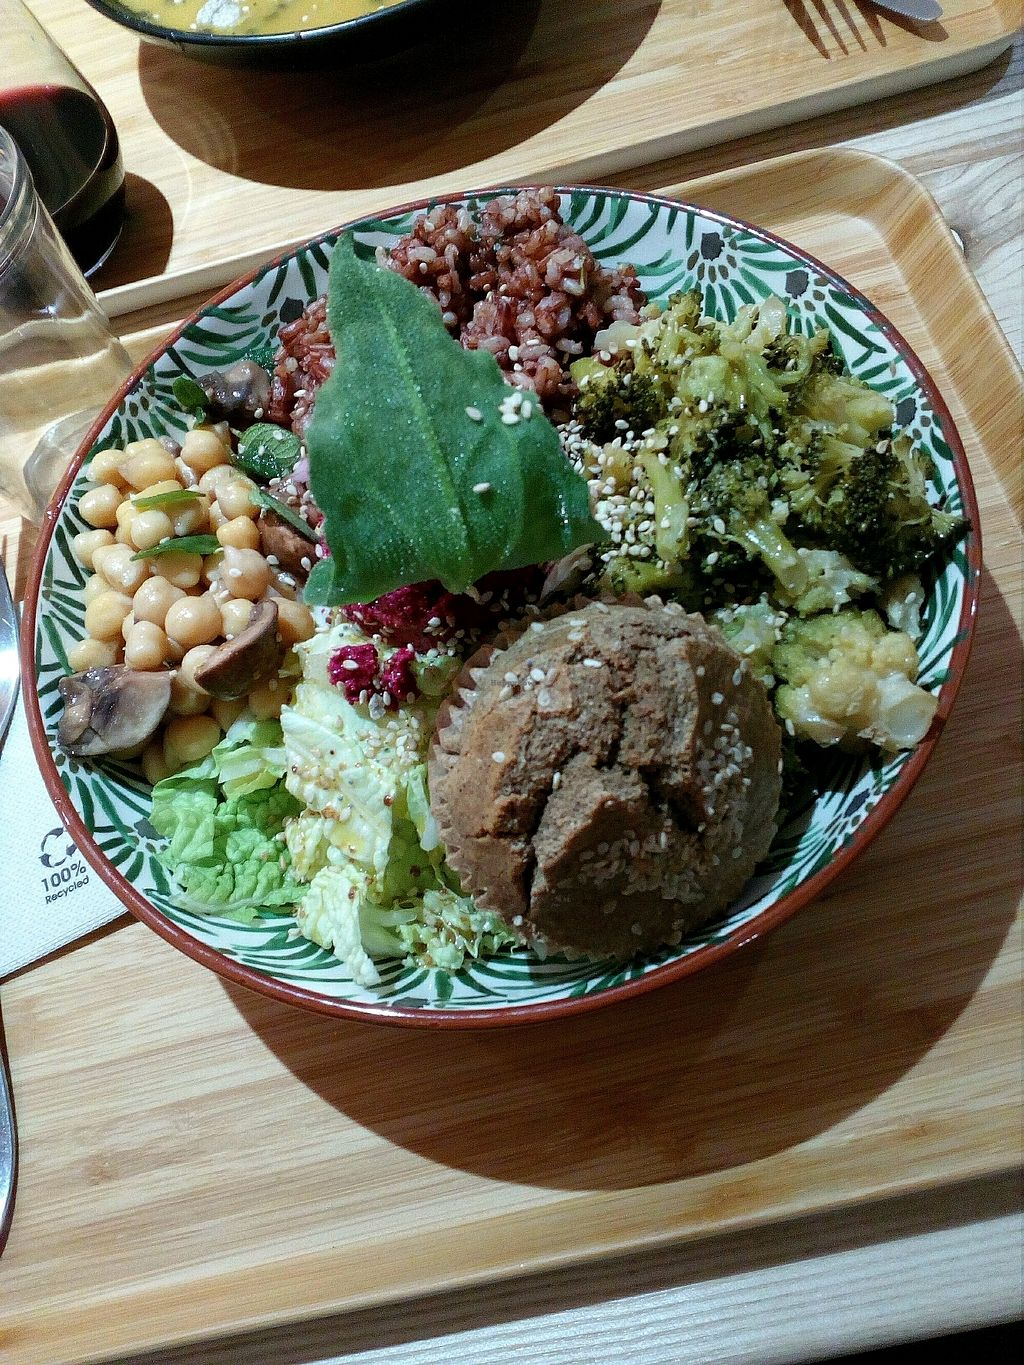 """Photo of Sovaga  by <a href=""""/members/profile/wyrd"""">wyrd</a> <br/>mixed vegan dish <br/> December 14, 2017  - <a href='/contact/abuse/image/100002/335518'>Report</a>"""